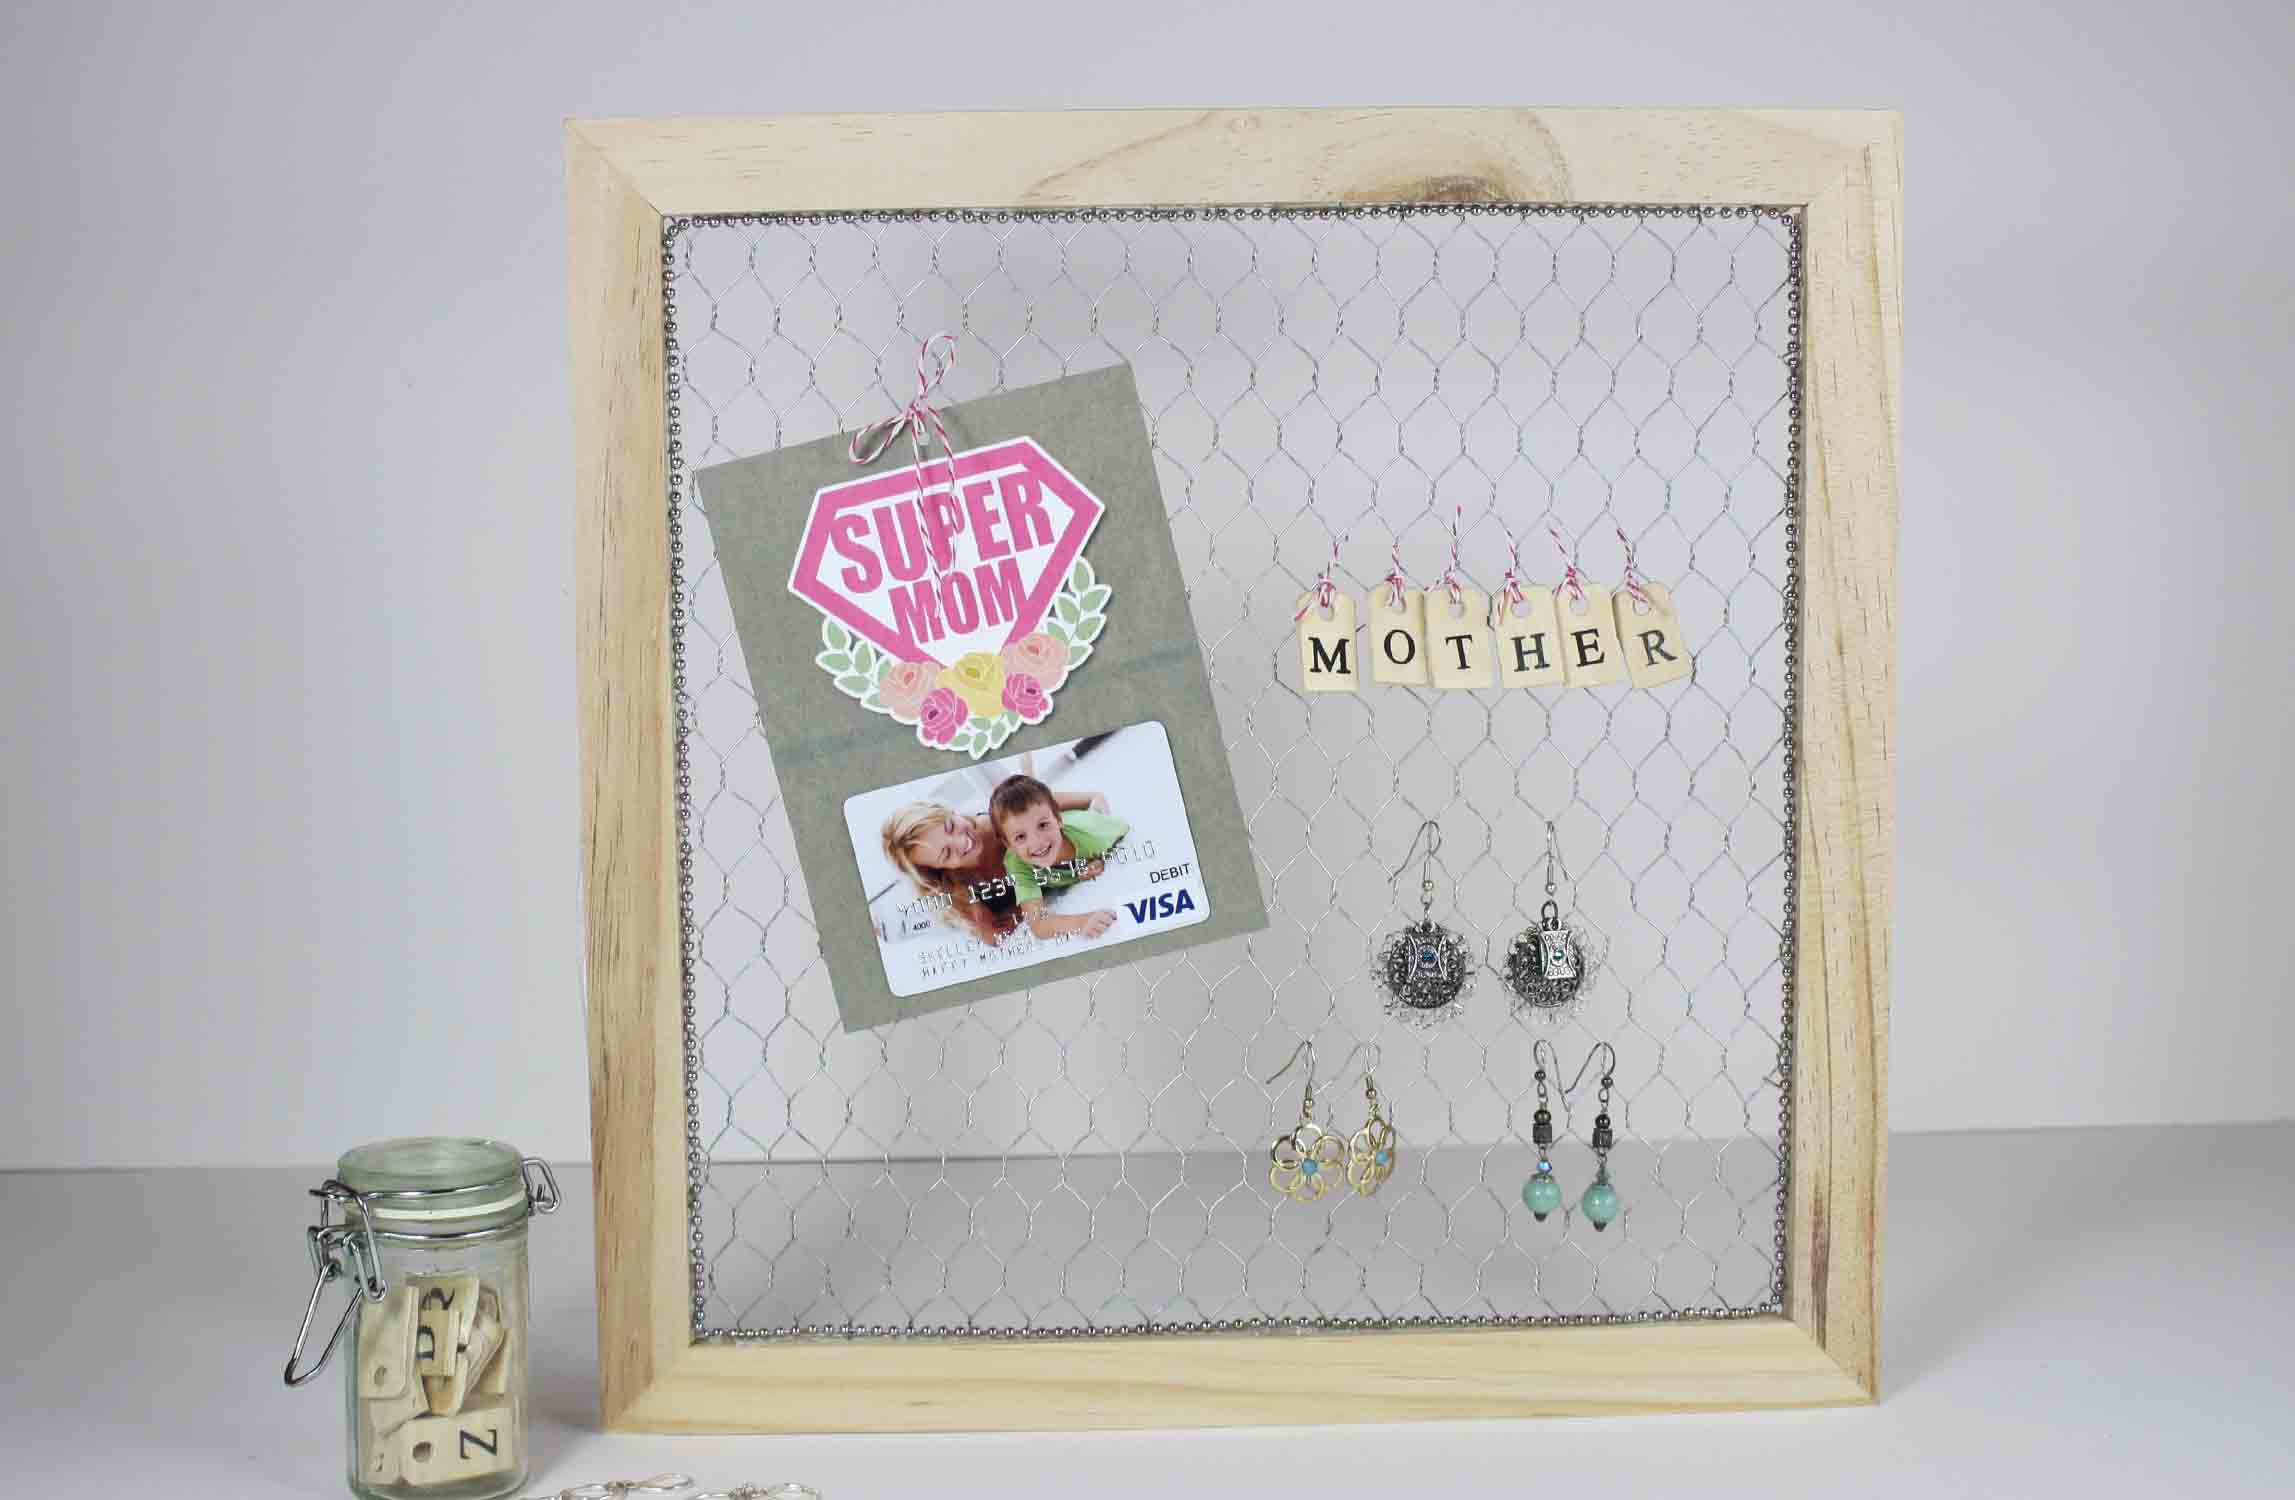 super mom gift card on holder